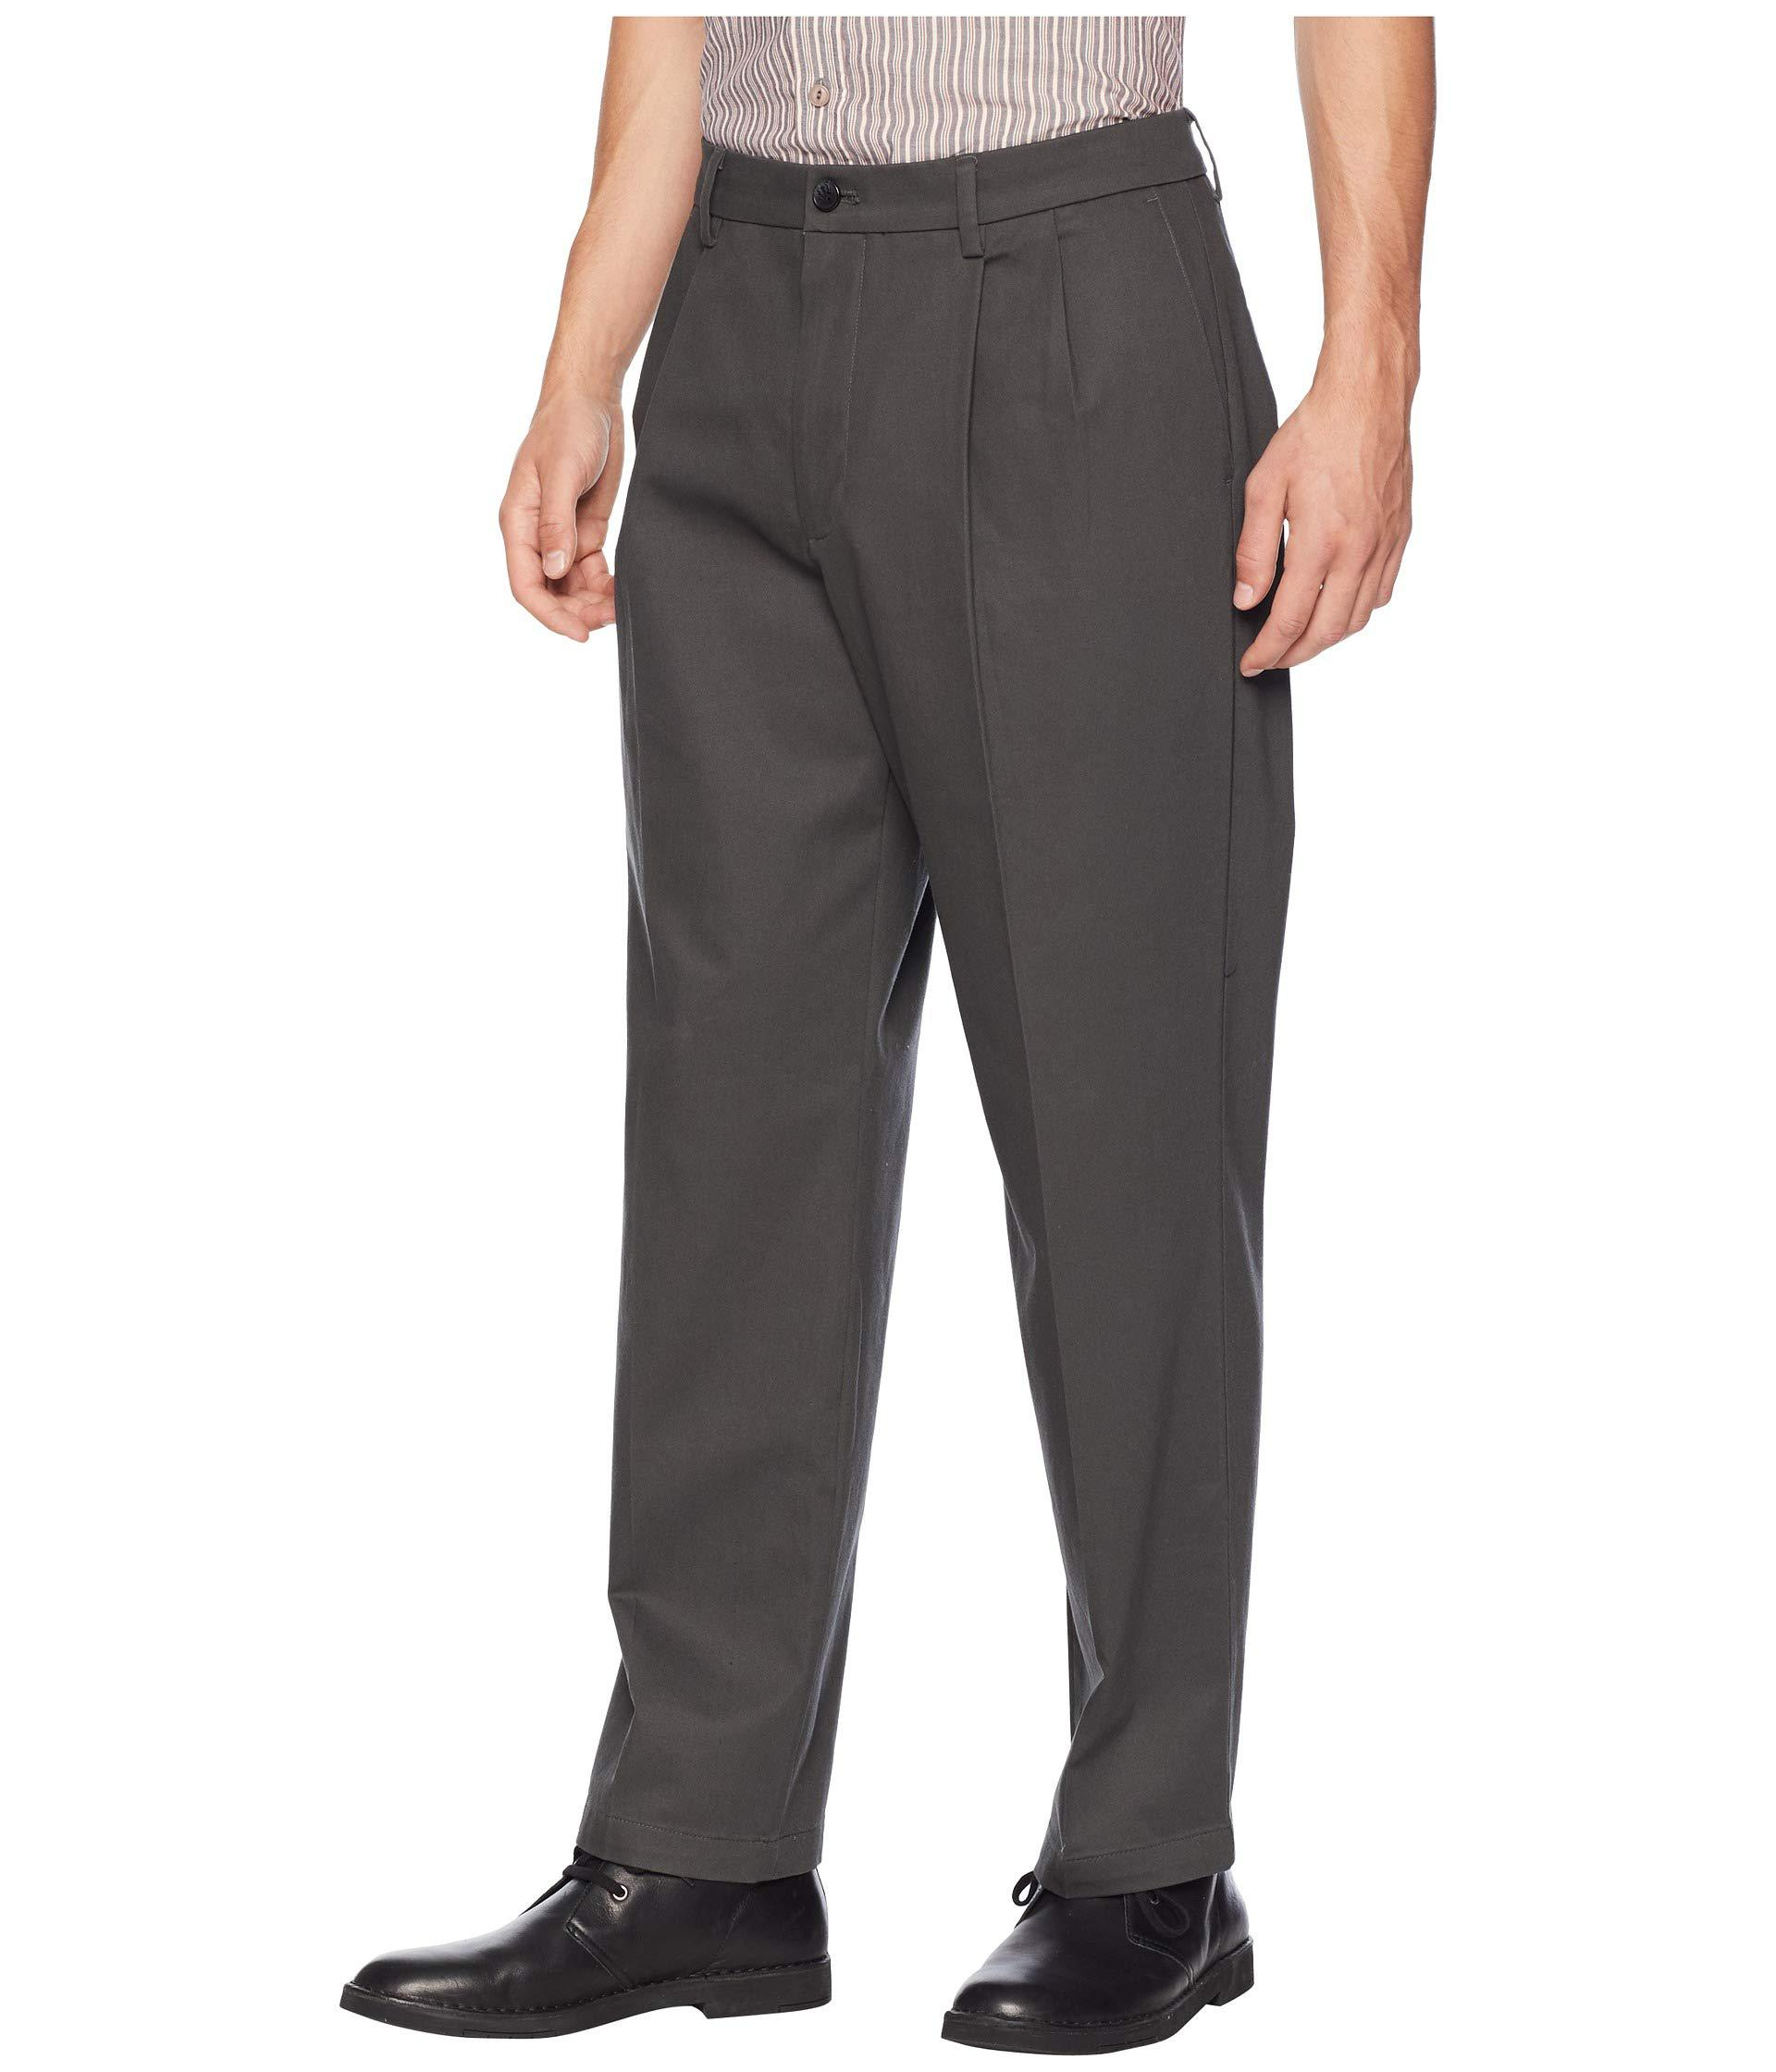 b7321bb5ebfa1 Lyst - Dockers Relaxed Fit Signature Khaki Lux Cotton Stretch Pants D4 -  Pleated ( Navy) Men s Casual Pants in Black for Men